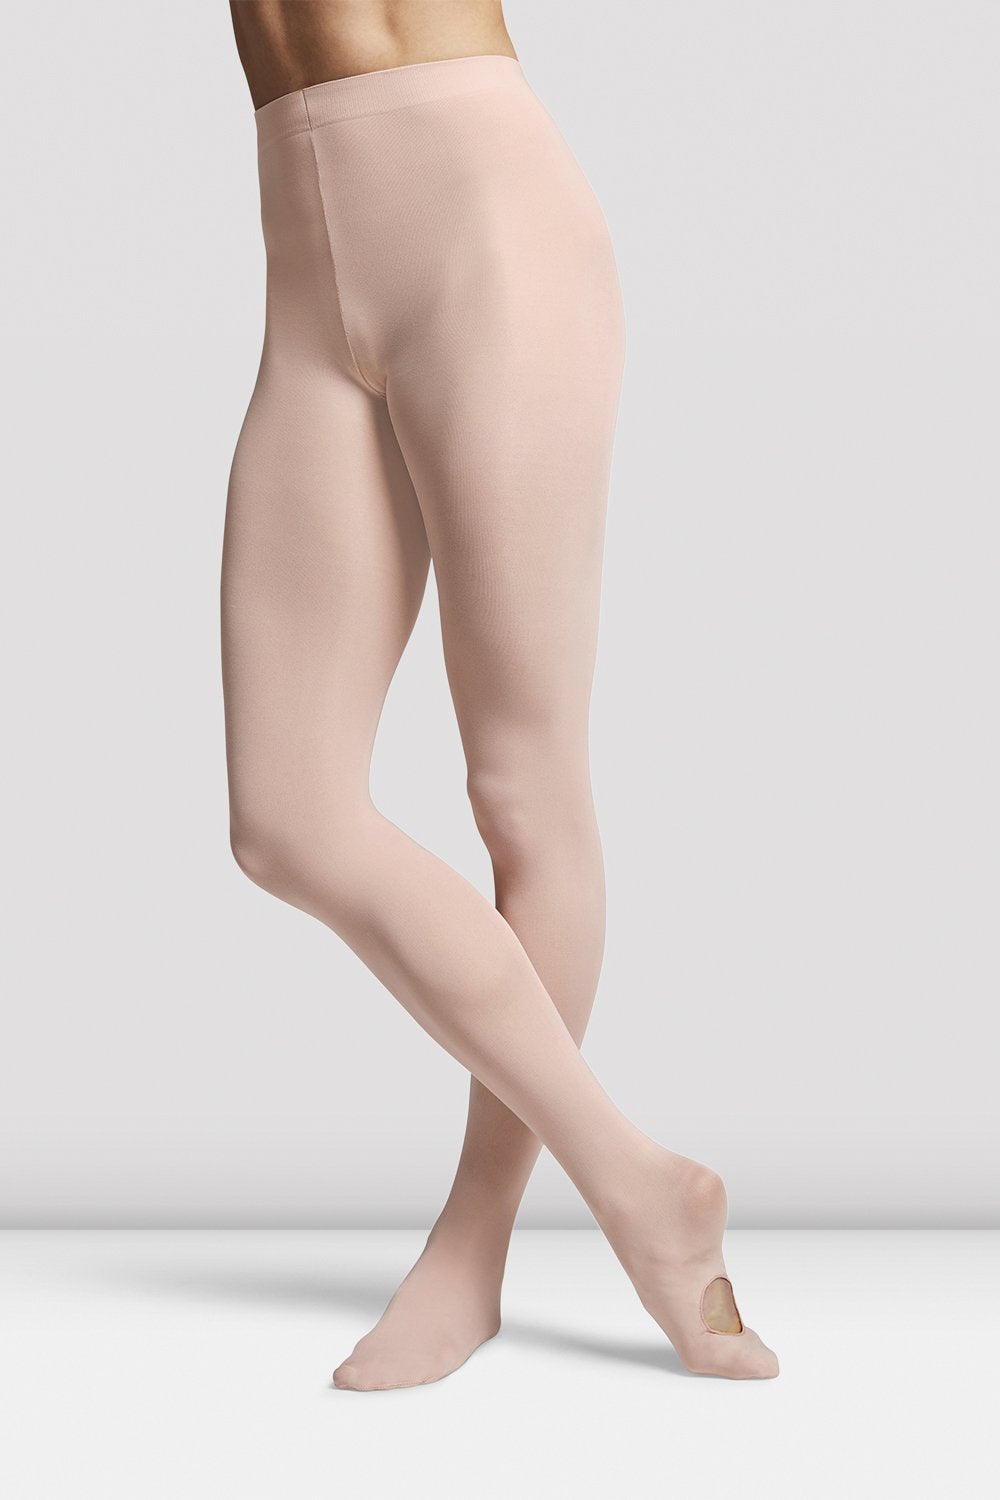 Bloch Adult Contoursoft Adaptatoe Tights - T0982L